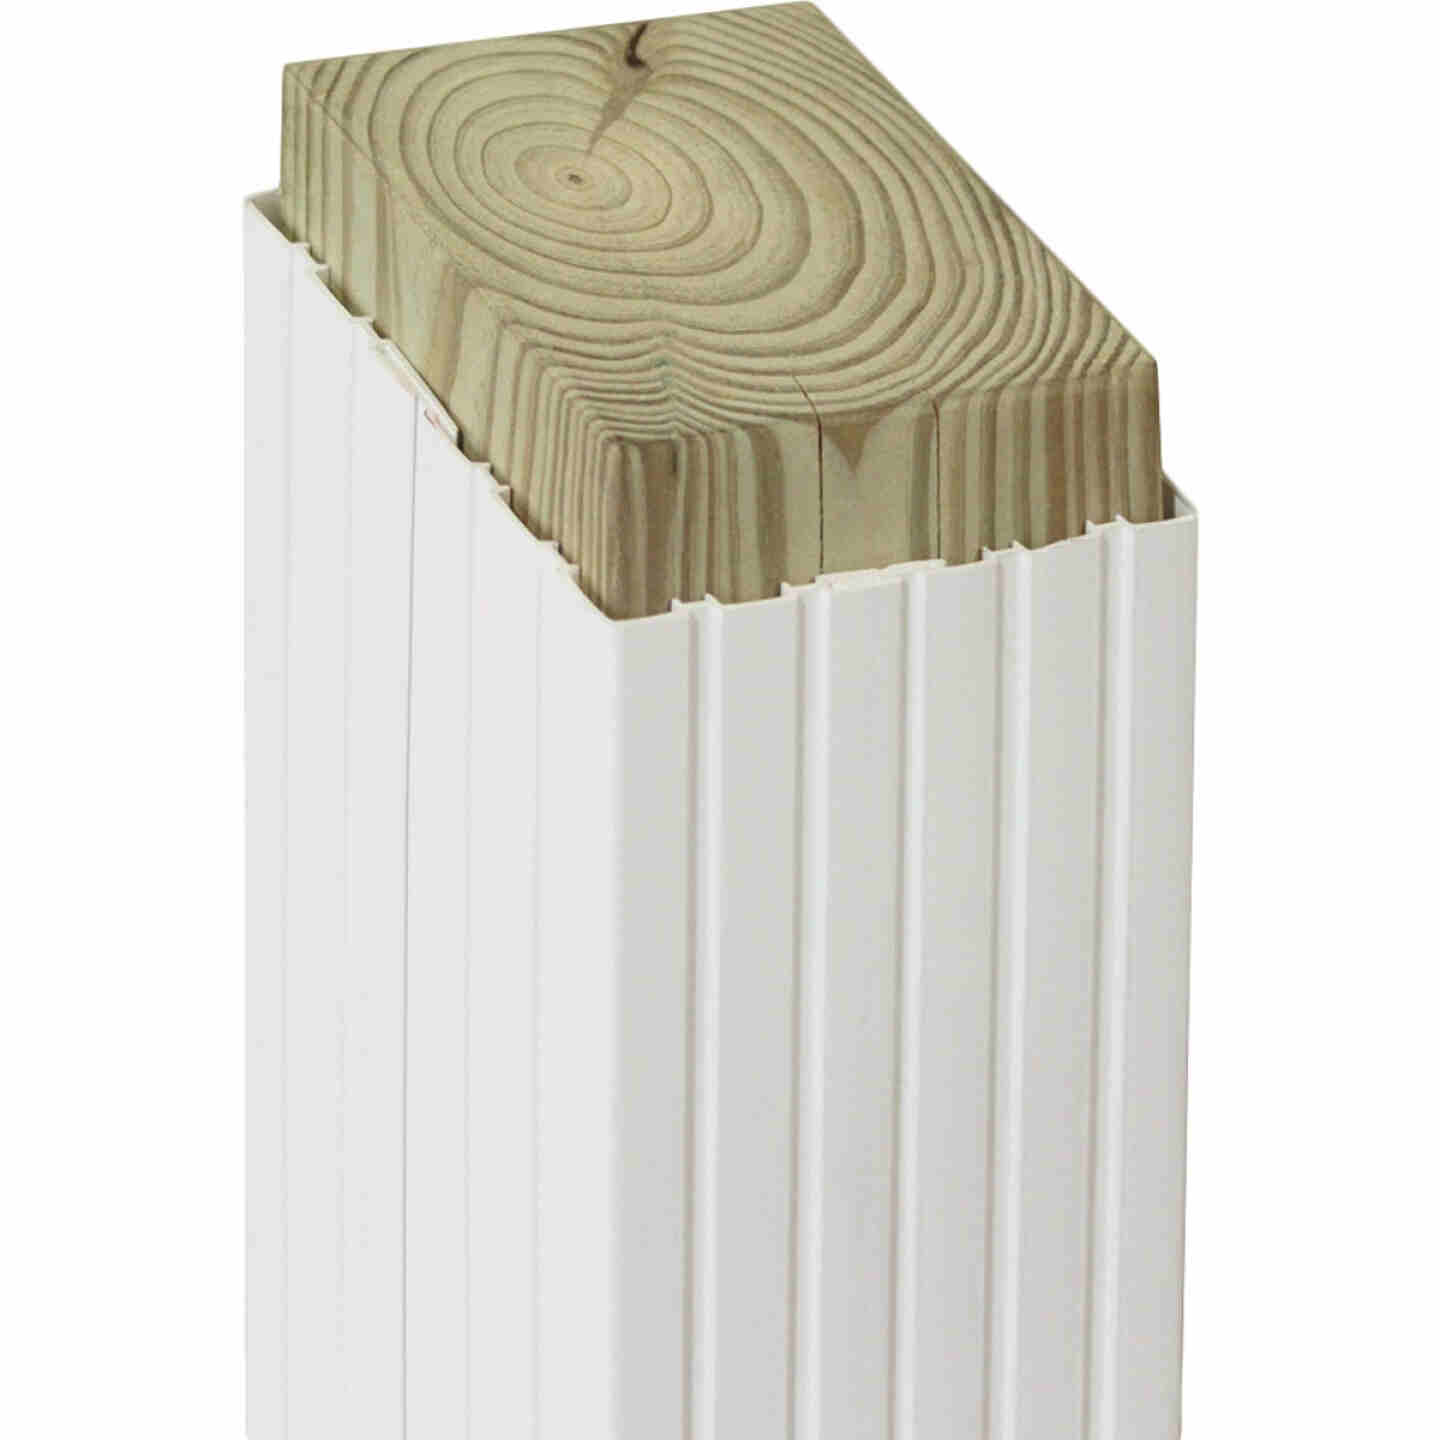 Beechdale 6 In. W. x 6 In. H. x 102 In. L. White PVC Fluted Post Wrap Image 1